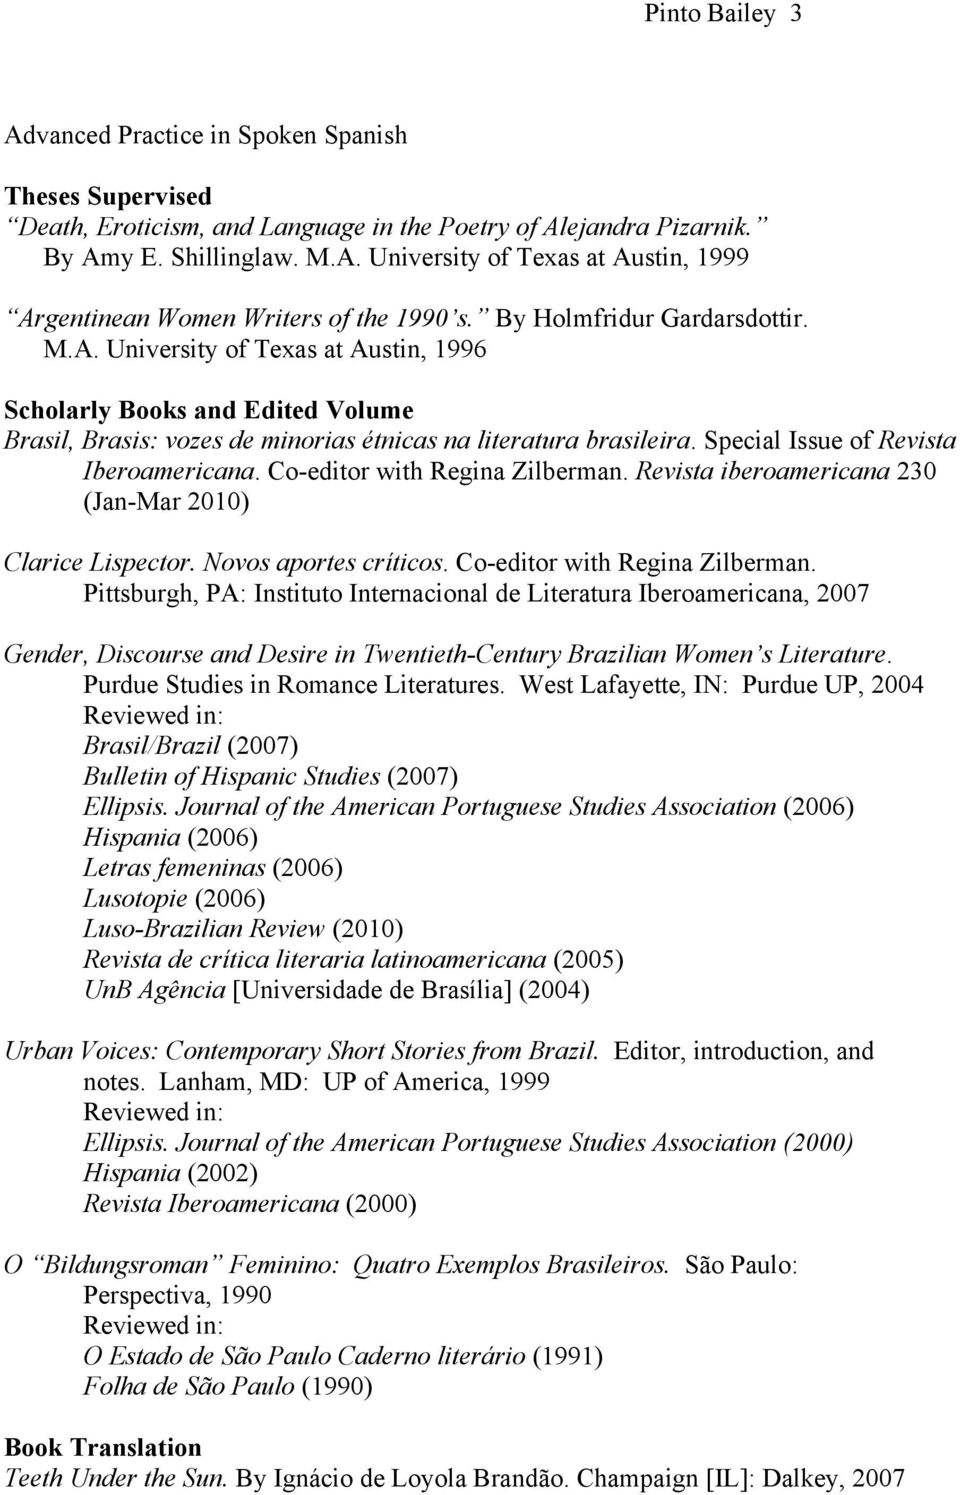 Special Issue of Revista Iberoamericana. Co-editor with Regina Zilberman.